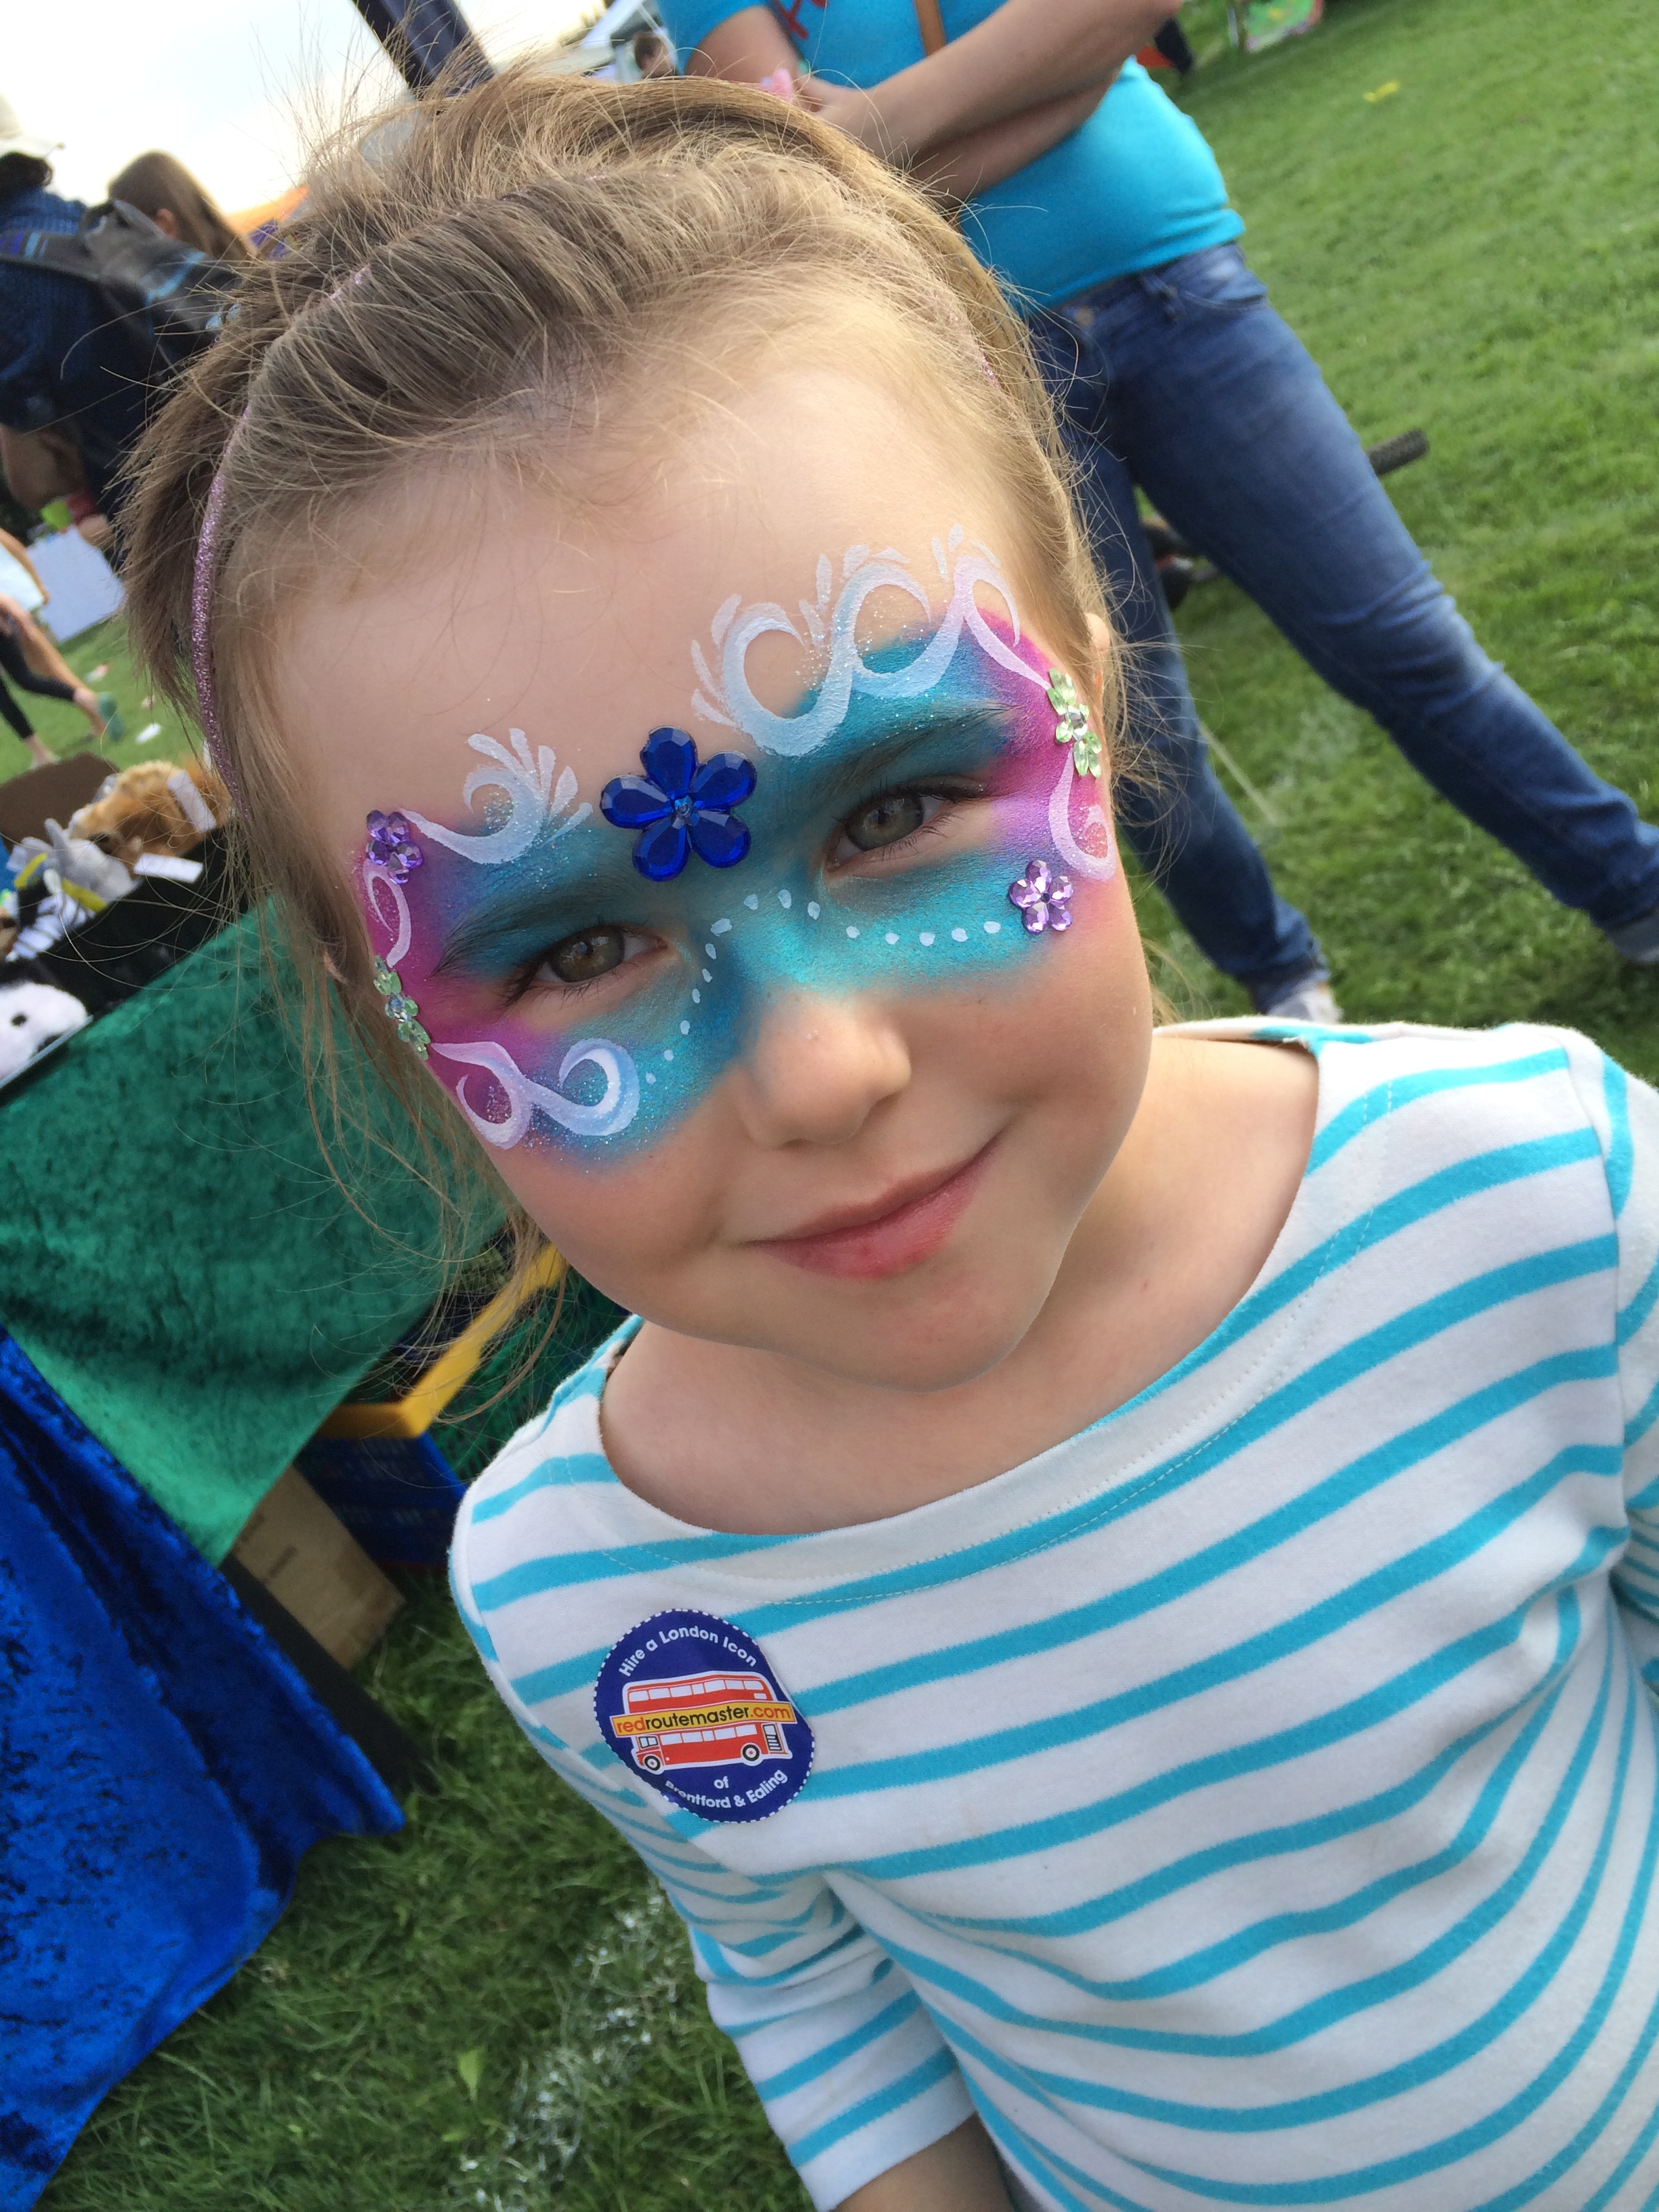 Face paint and balloons